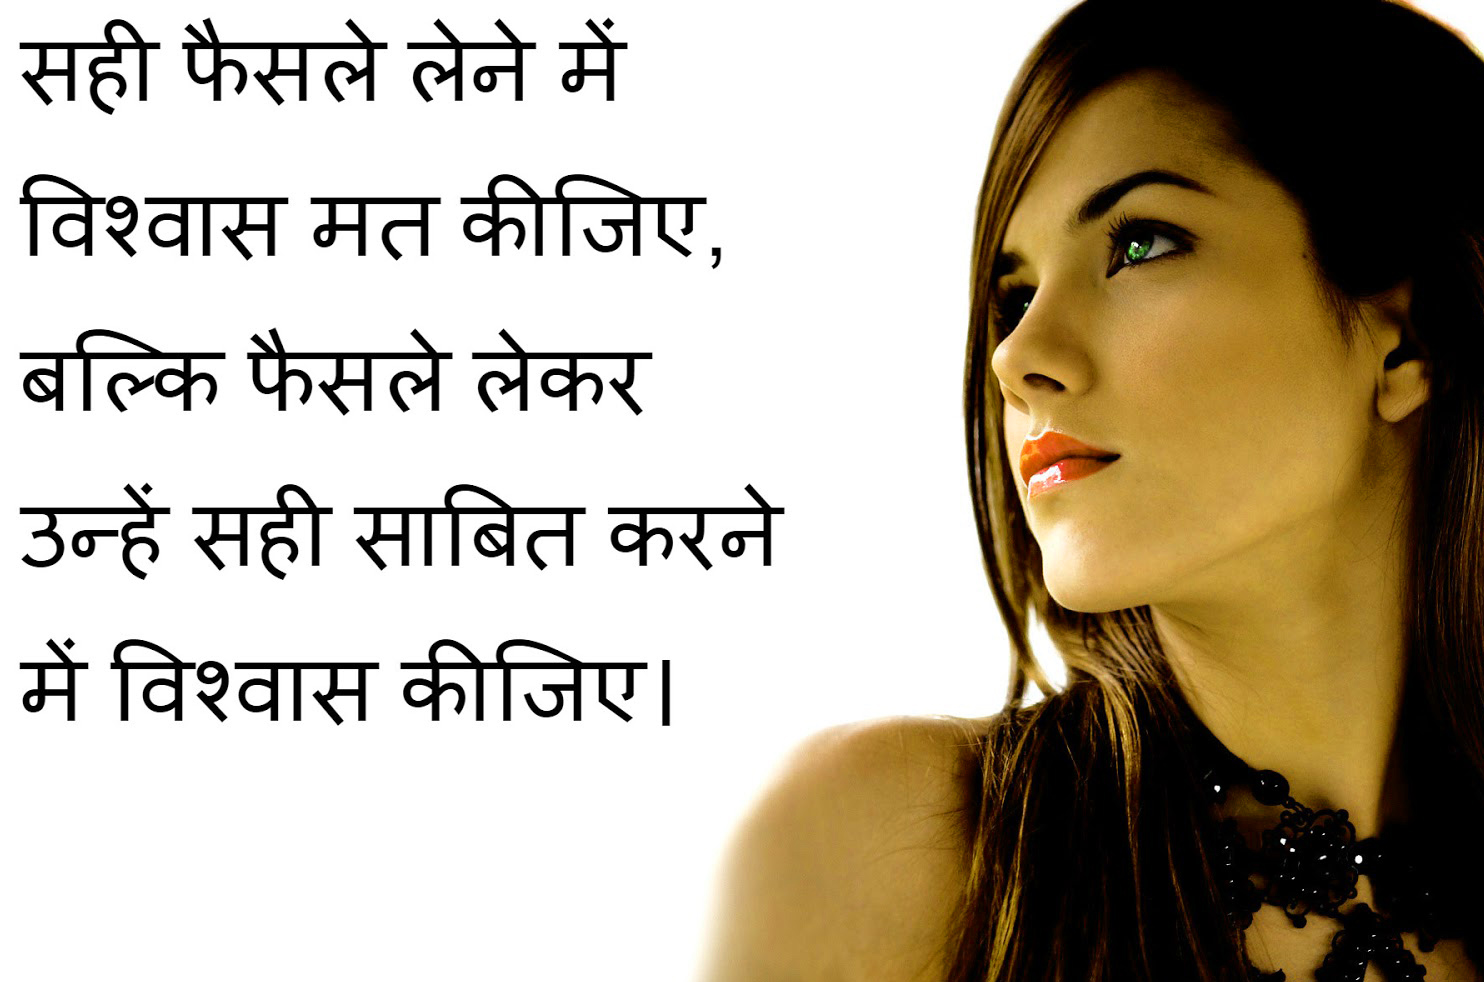 gf bf jokes in hindi Images Wallpaper Photo HD For Facebook